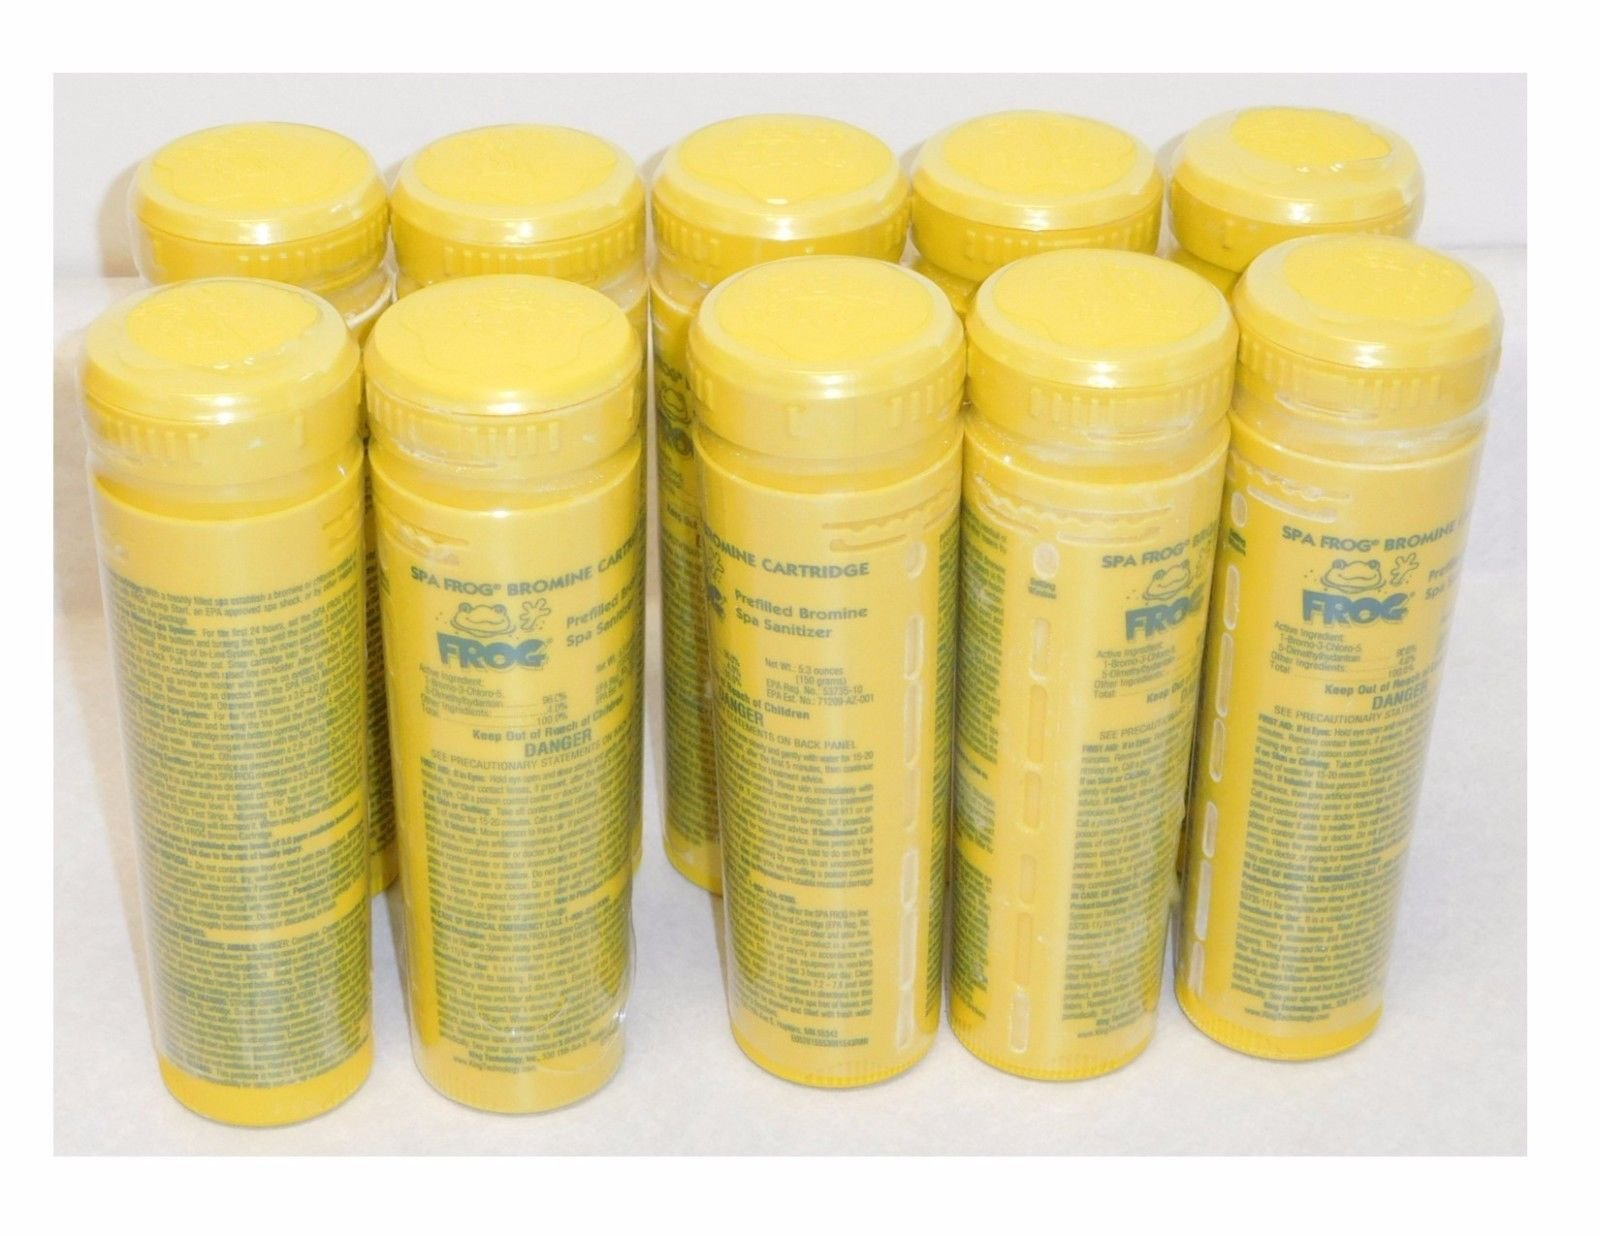 10 King Technology Spa Frog Bromine Cartridges ^#H4345 344Y584H293718 by King Technology